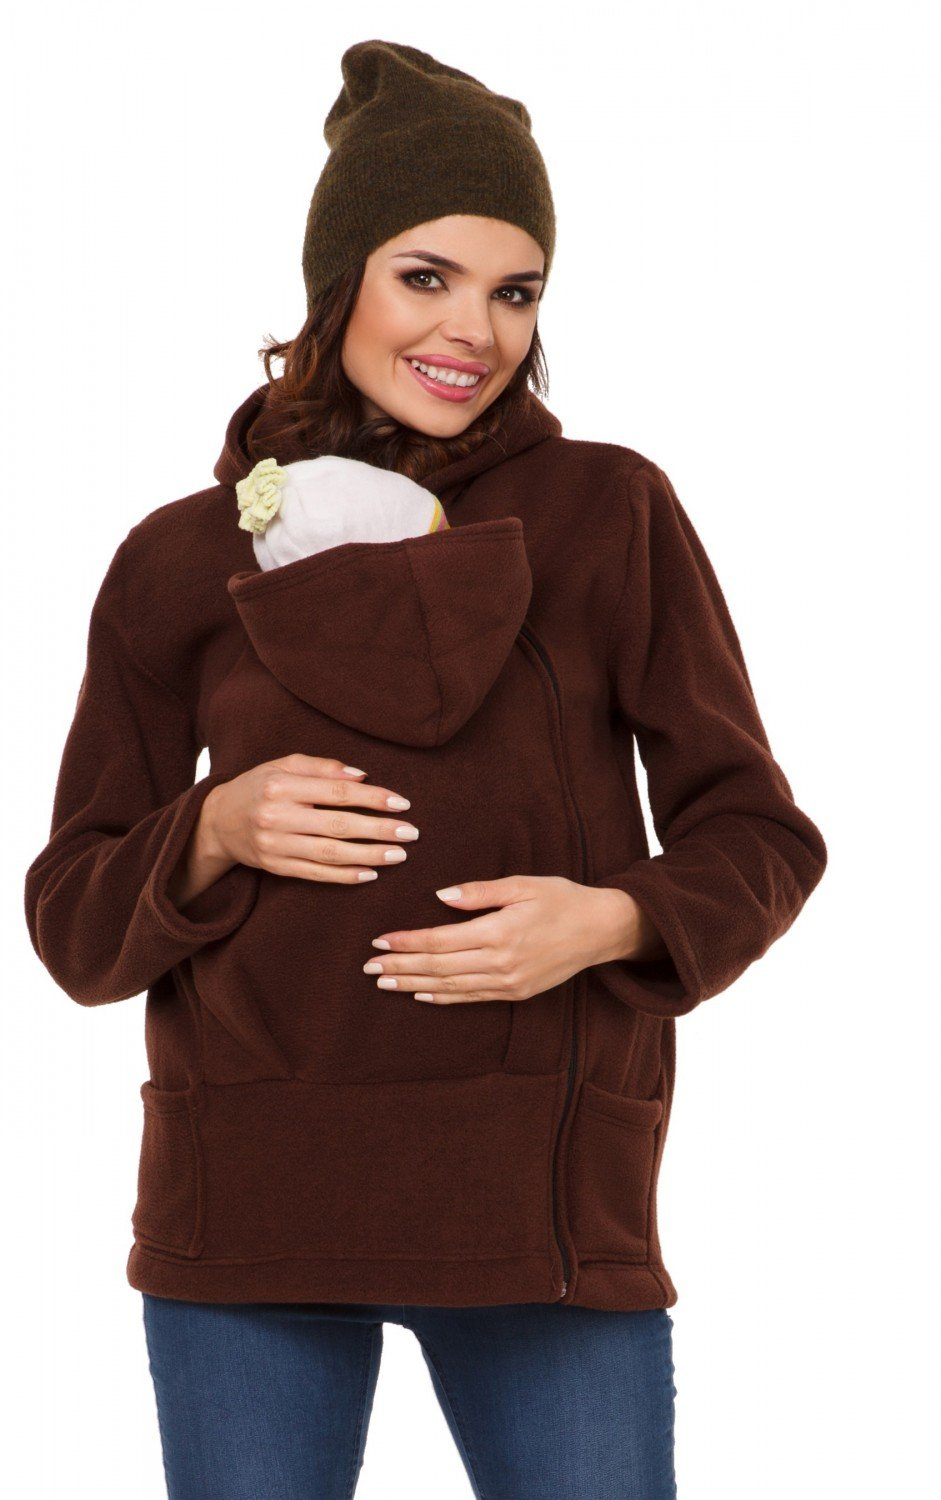 Zeta Ville - Women's Top Maternity Hooded Sweatshirt Babywearing Carrier - 031c carrier_top_031